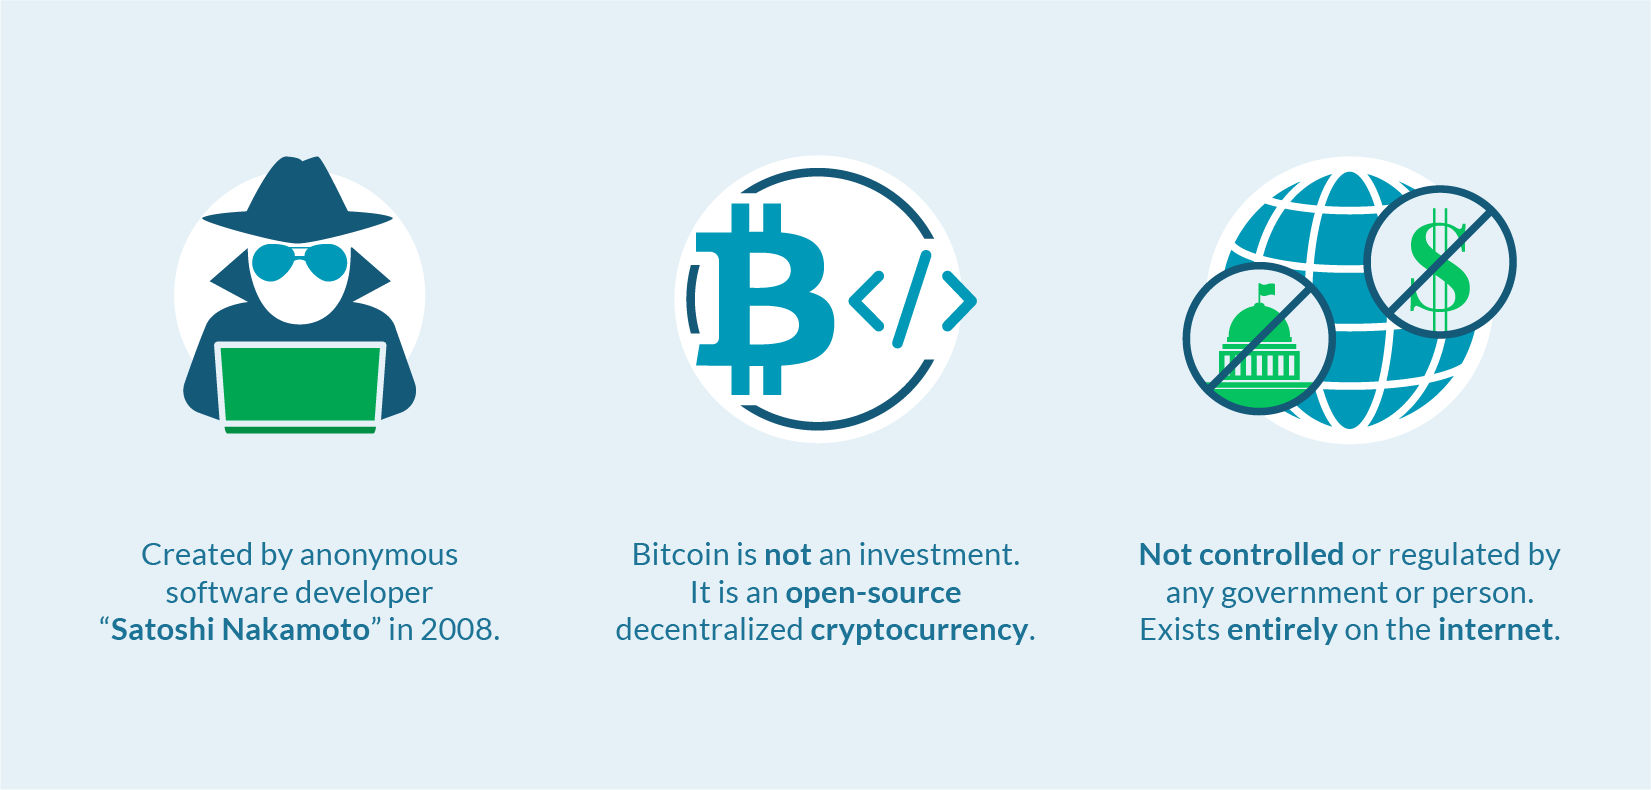 cryptocurrency for transactions not investment